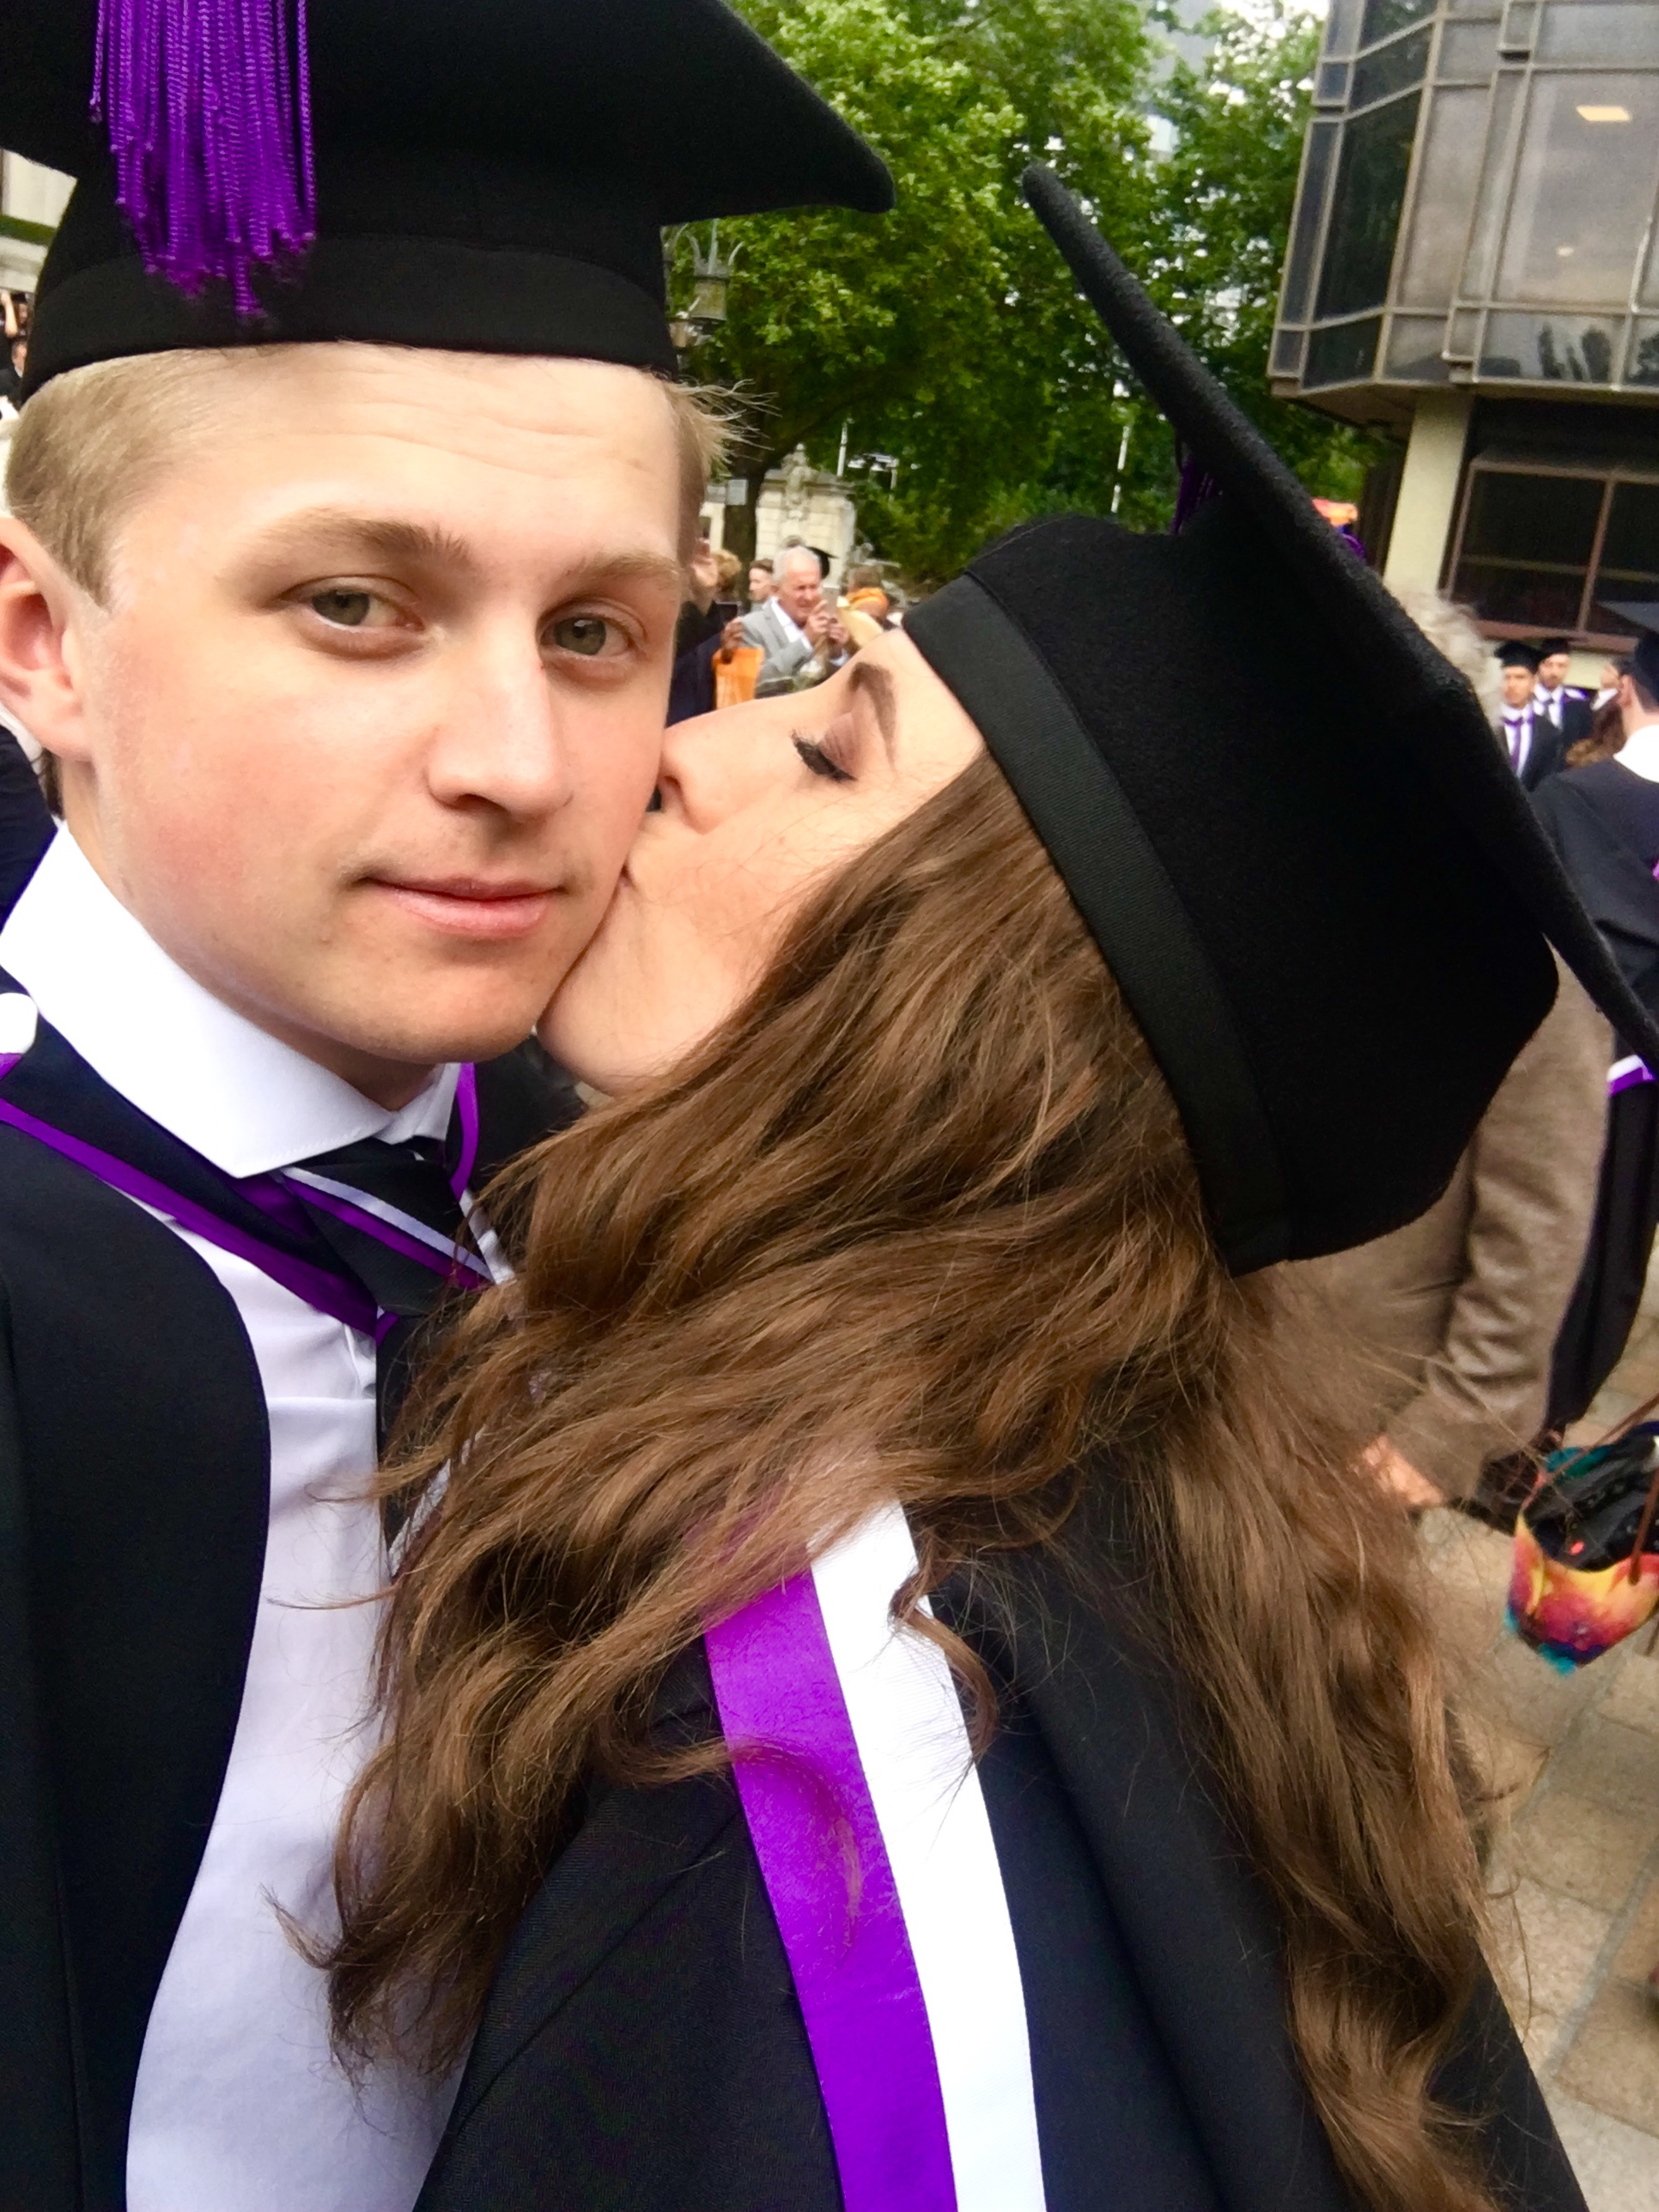 Rebecca Hams and George Savoury - ...have been together for 3 years and moved in together earlier this year! They first met in Bateson Halls in September 2014 where their flats were next door to each other, and later discovered they were also course mates. Both graduating in 2017, Rebecca studied History and George studied History and American Studies.